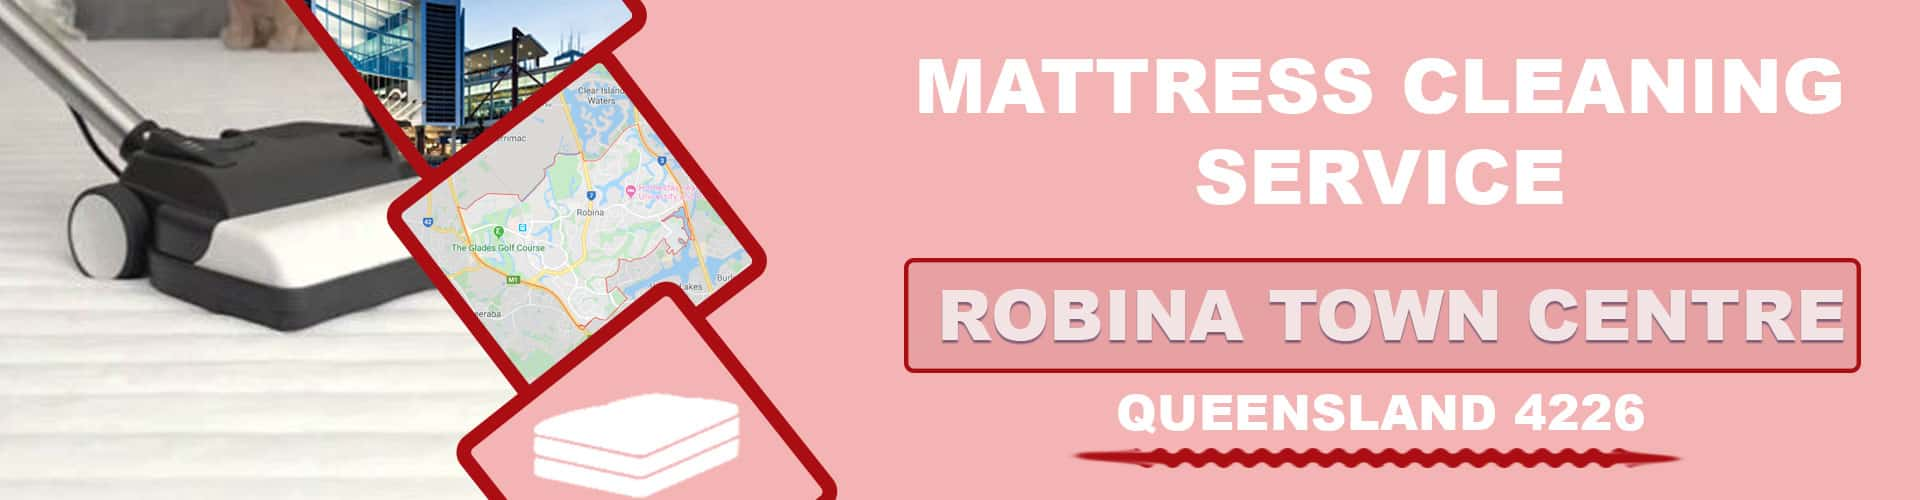 MATTRESS CLEANING ROBINA TOWN CENTRE